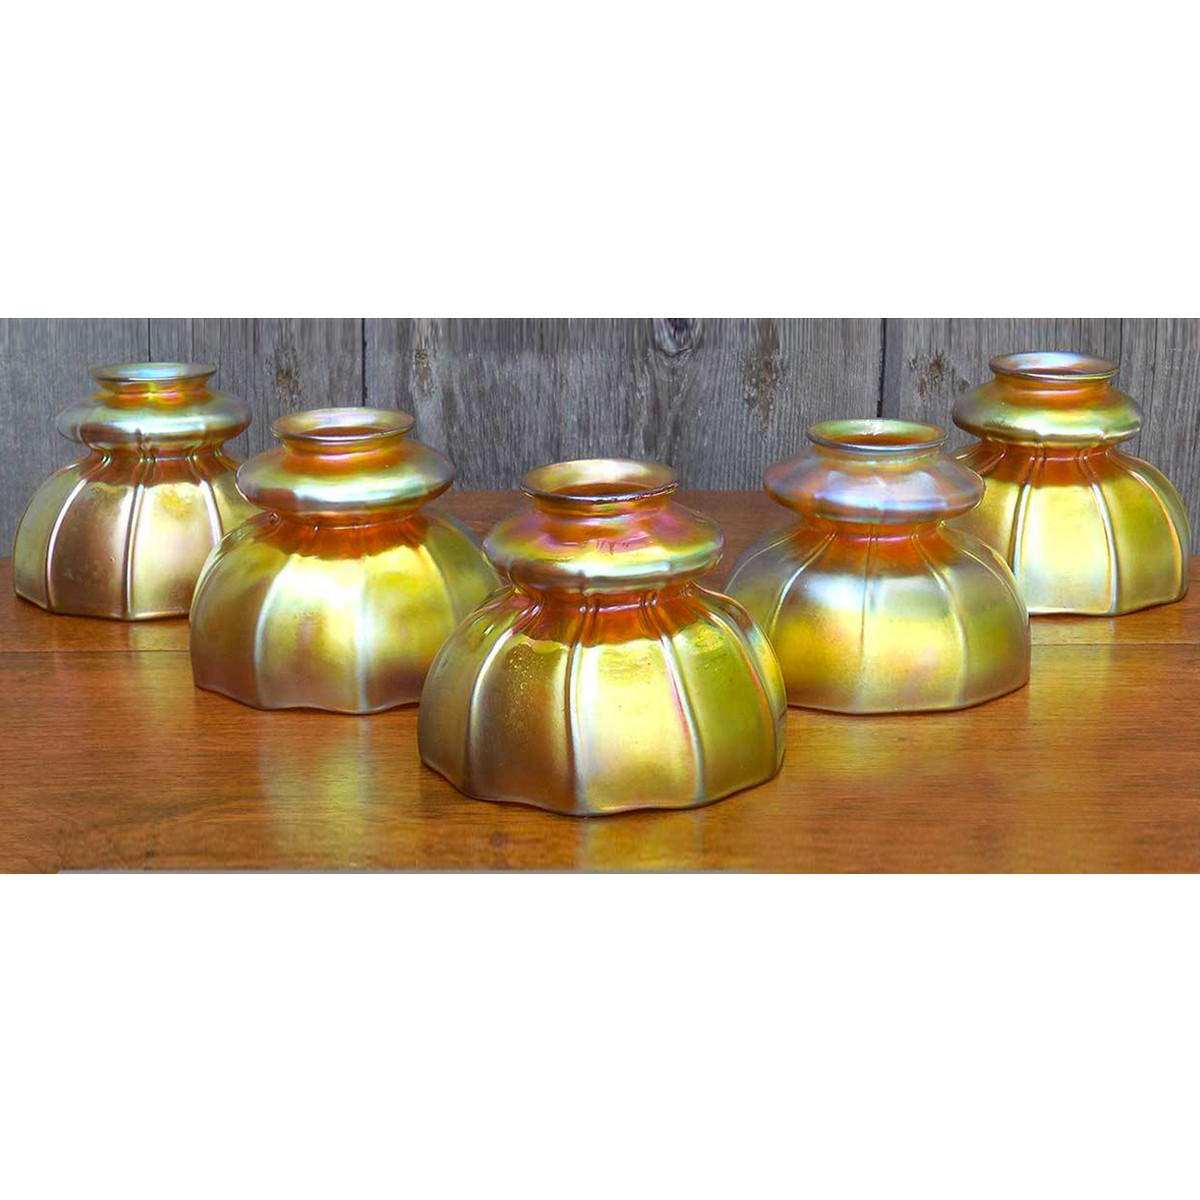 L14258 - Set of Five Steuben Art Glass Shades